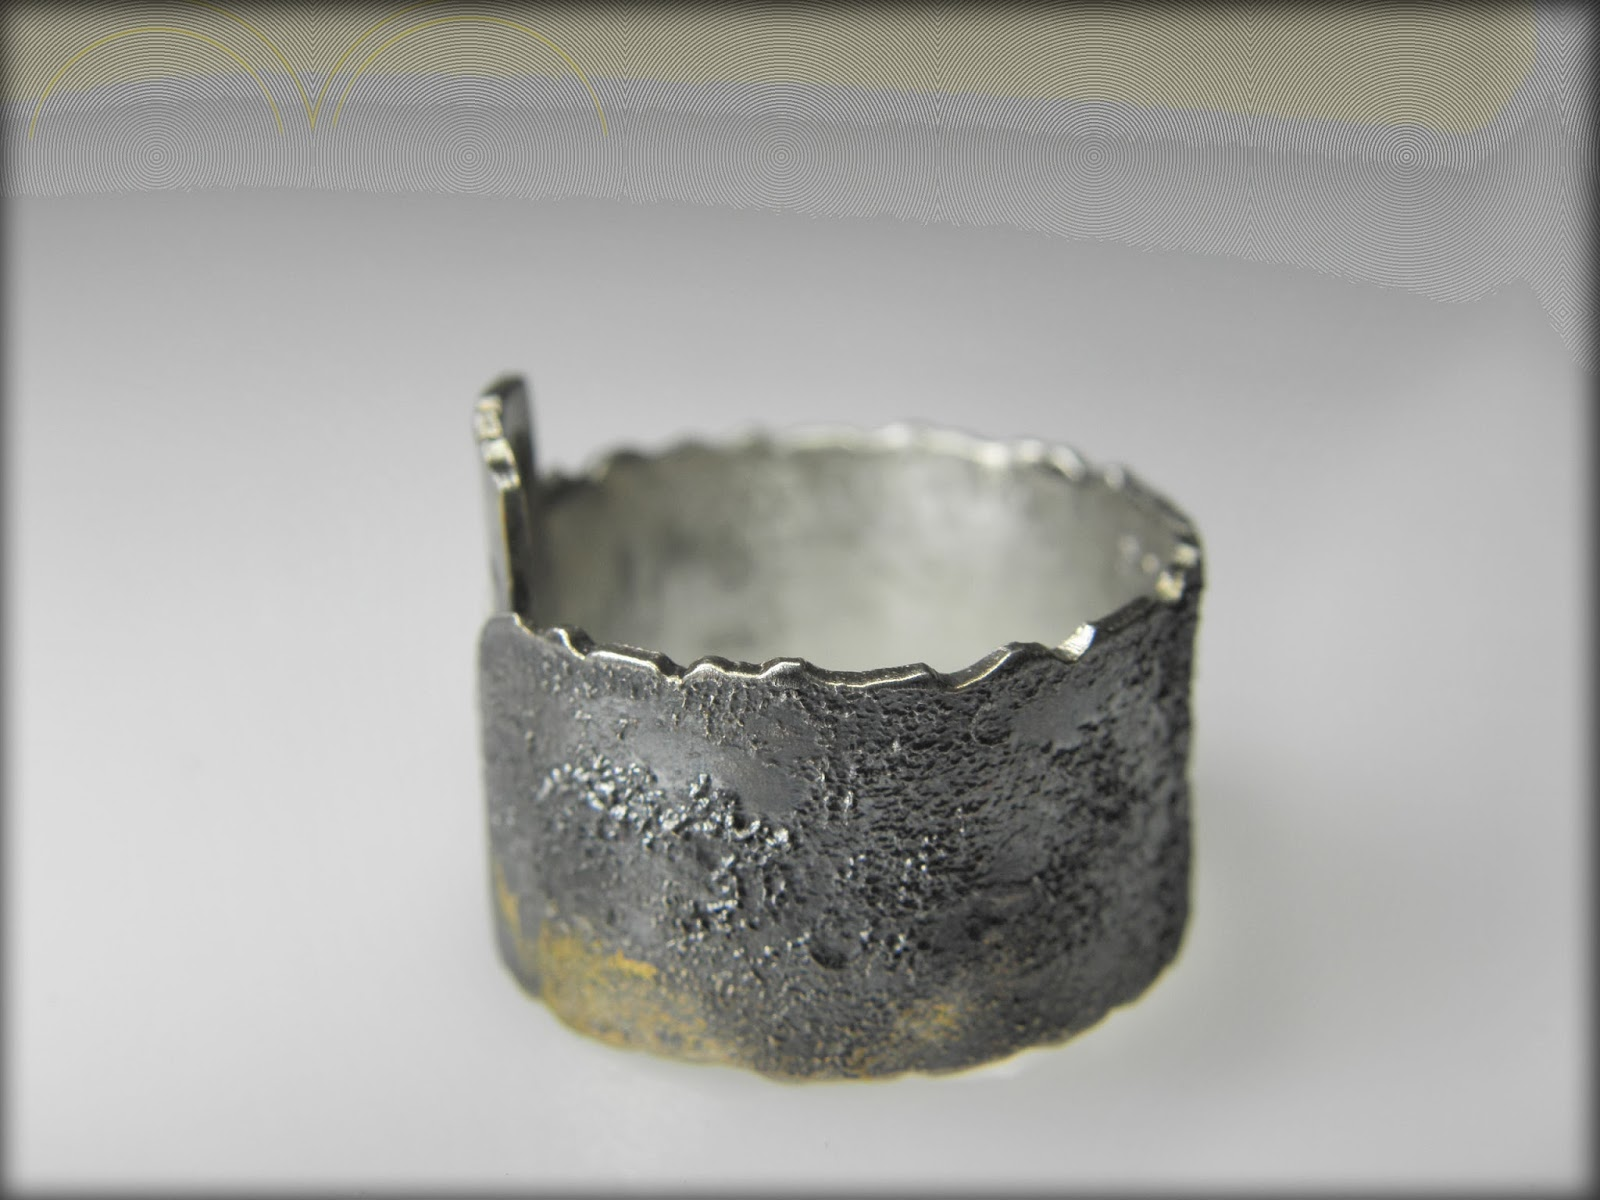 https://www.etsy.com/listing/179237549/silver-men-ring-with-24-k-yellow-gold?ref=shop_home_active_3